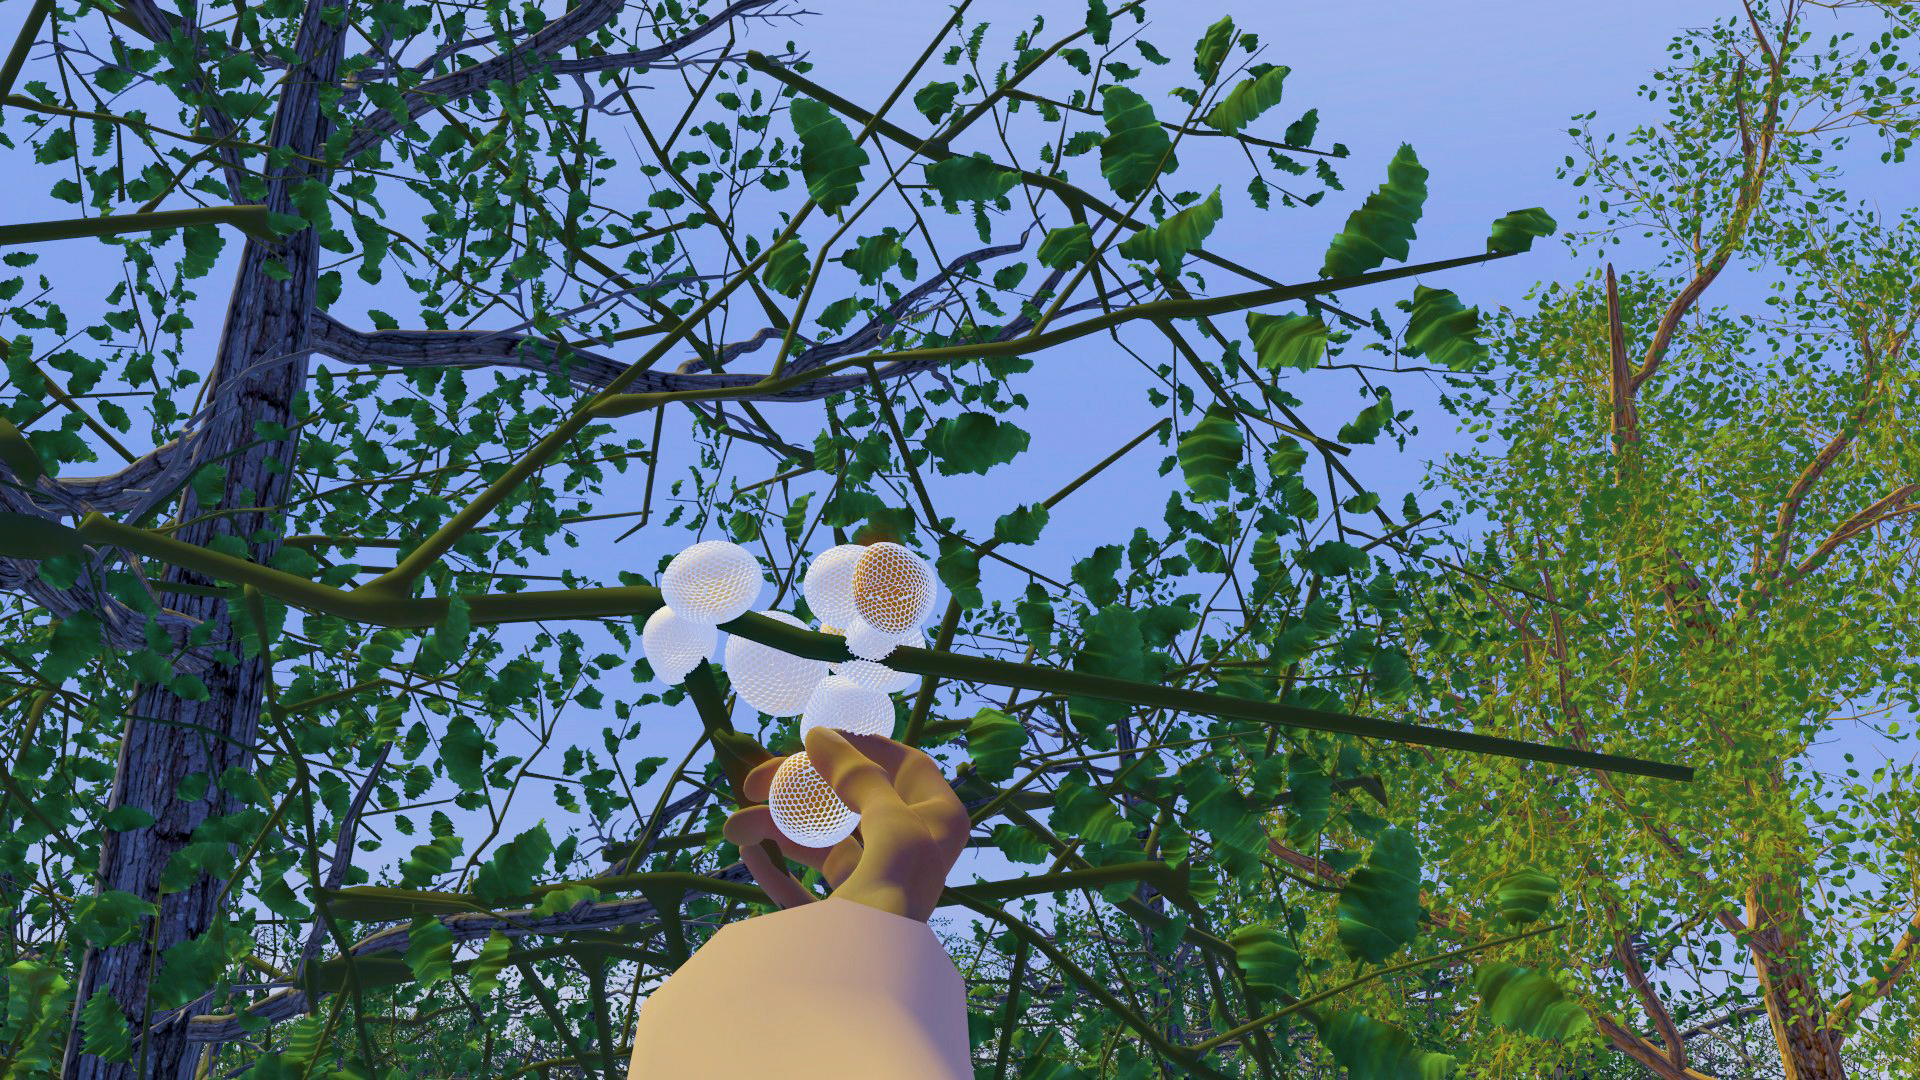 Screenshot form Mapu Kufüll showing a POV shot looking up through the trees, with arm reaching out to pick small white mushrooms